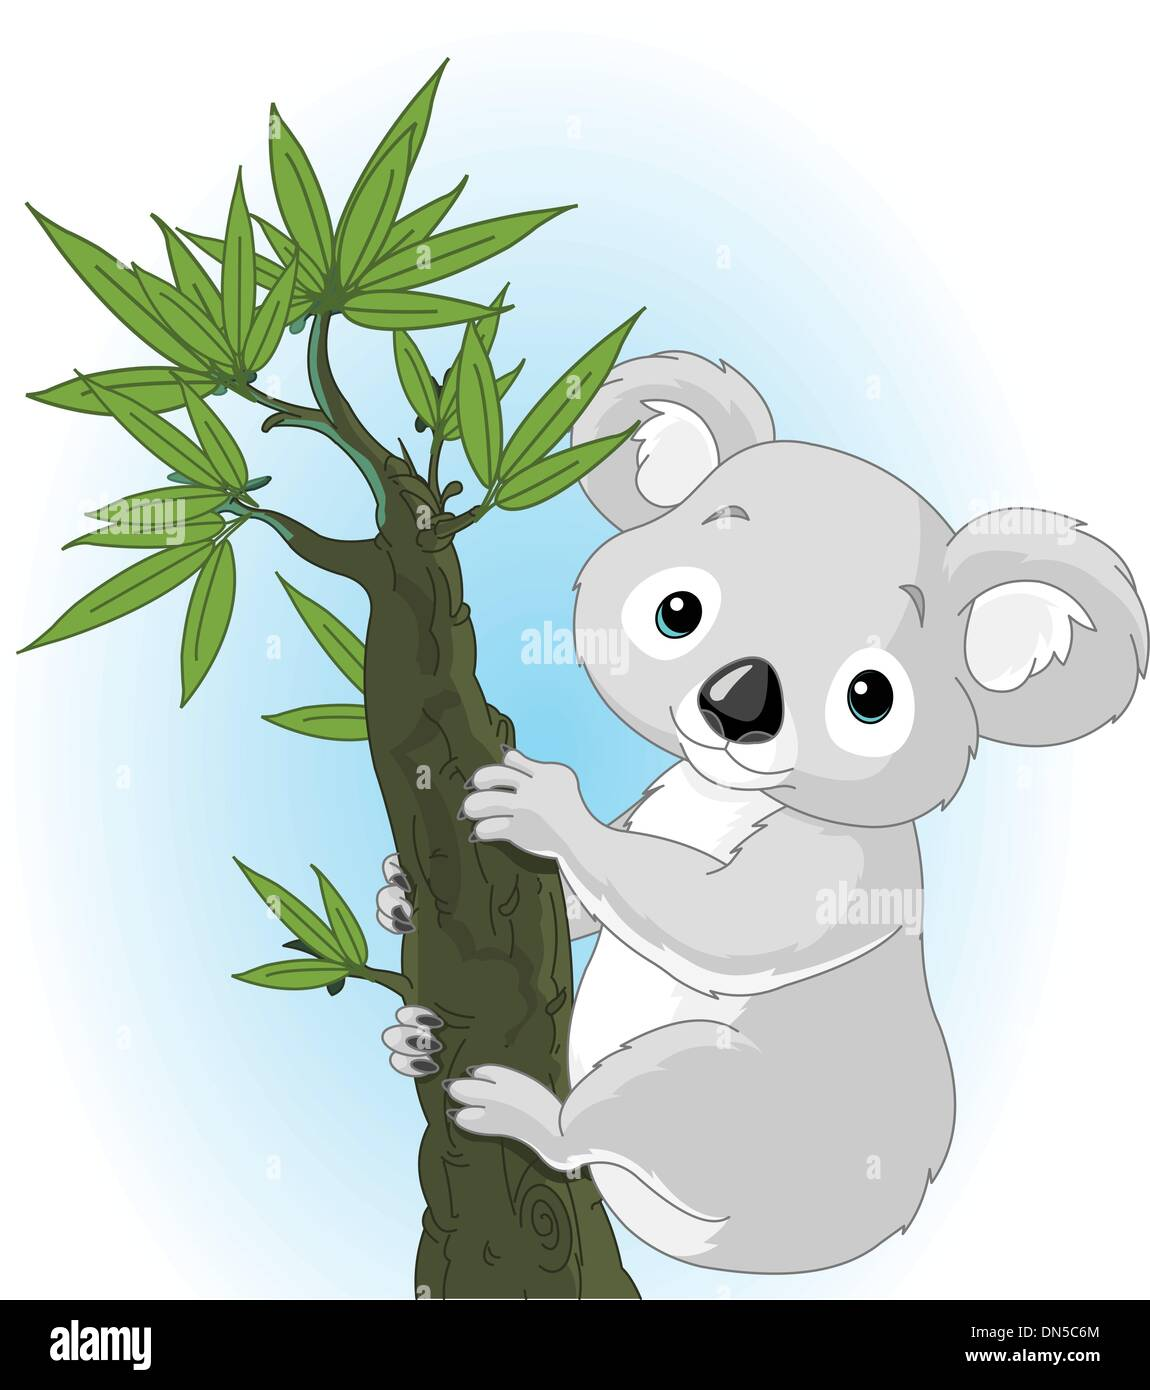 Koala Bear Clip Art Stockfotos & Koala Bear Clip Art Bilder - Alamy